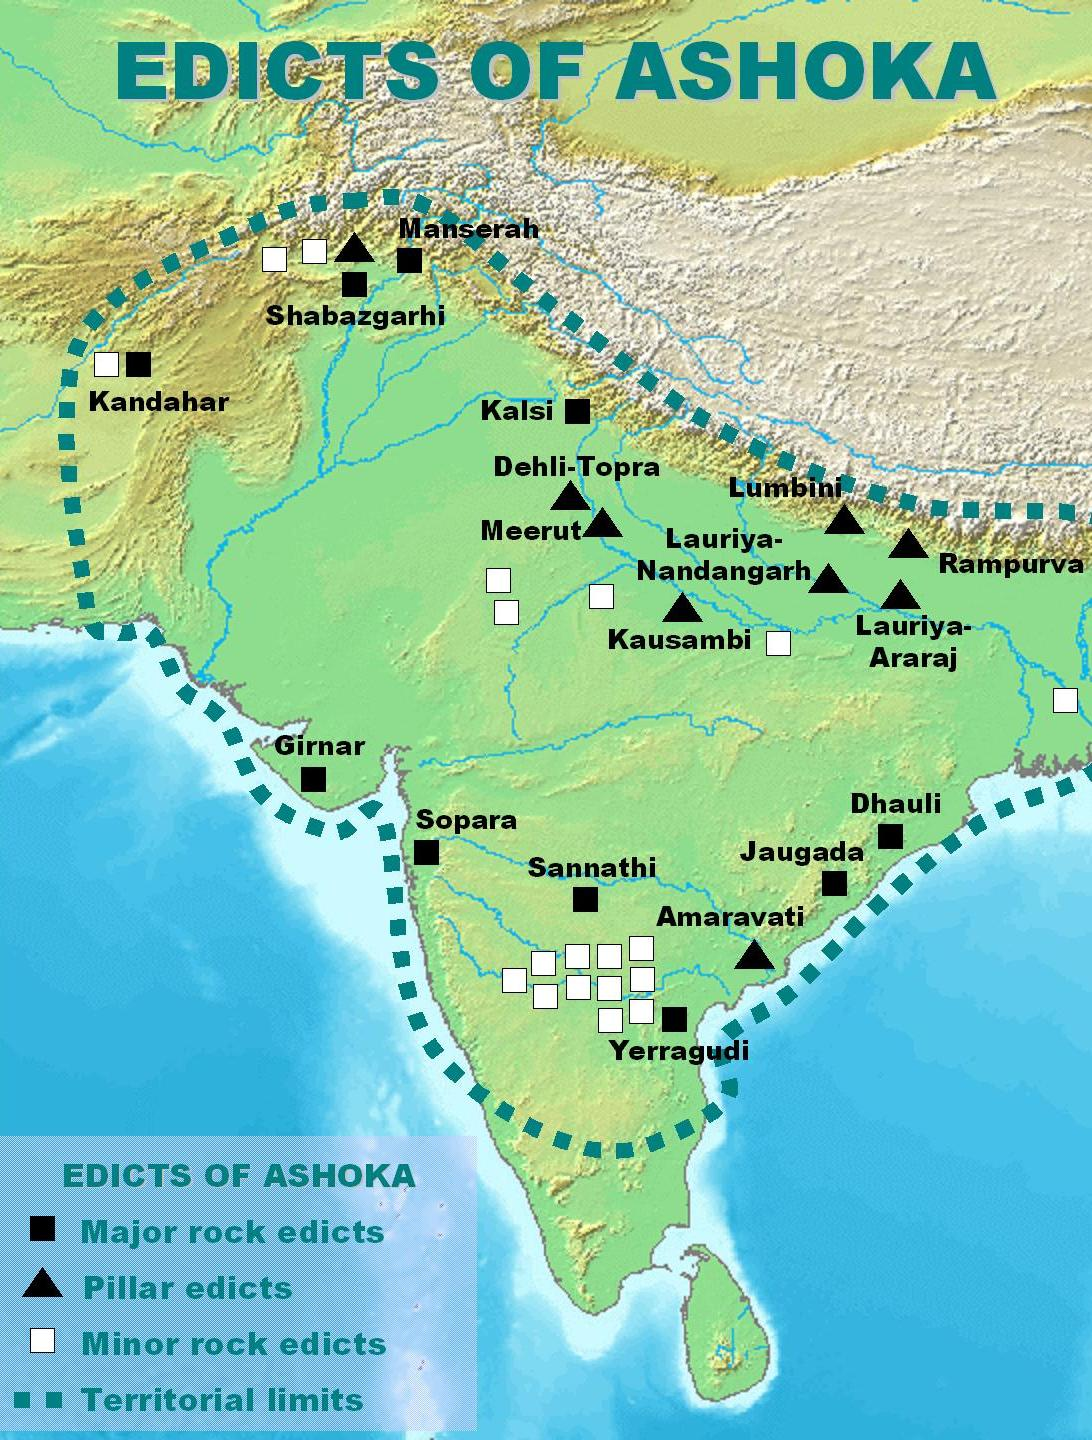 edicts of ashoka Ashoka, the most prominent emperor of the mauryan empire, ruled the majority of the indian subcontinent from 269 bc to 232 bc during his time as emperor, he expanded the realm of his empire to include present-day pakistan, afghanistan in the west, to the present-day bangladesh and the indian state of assam in the east.